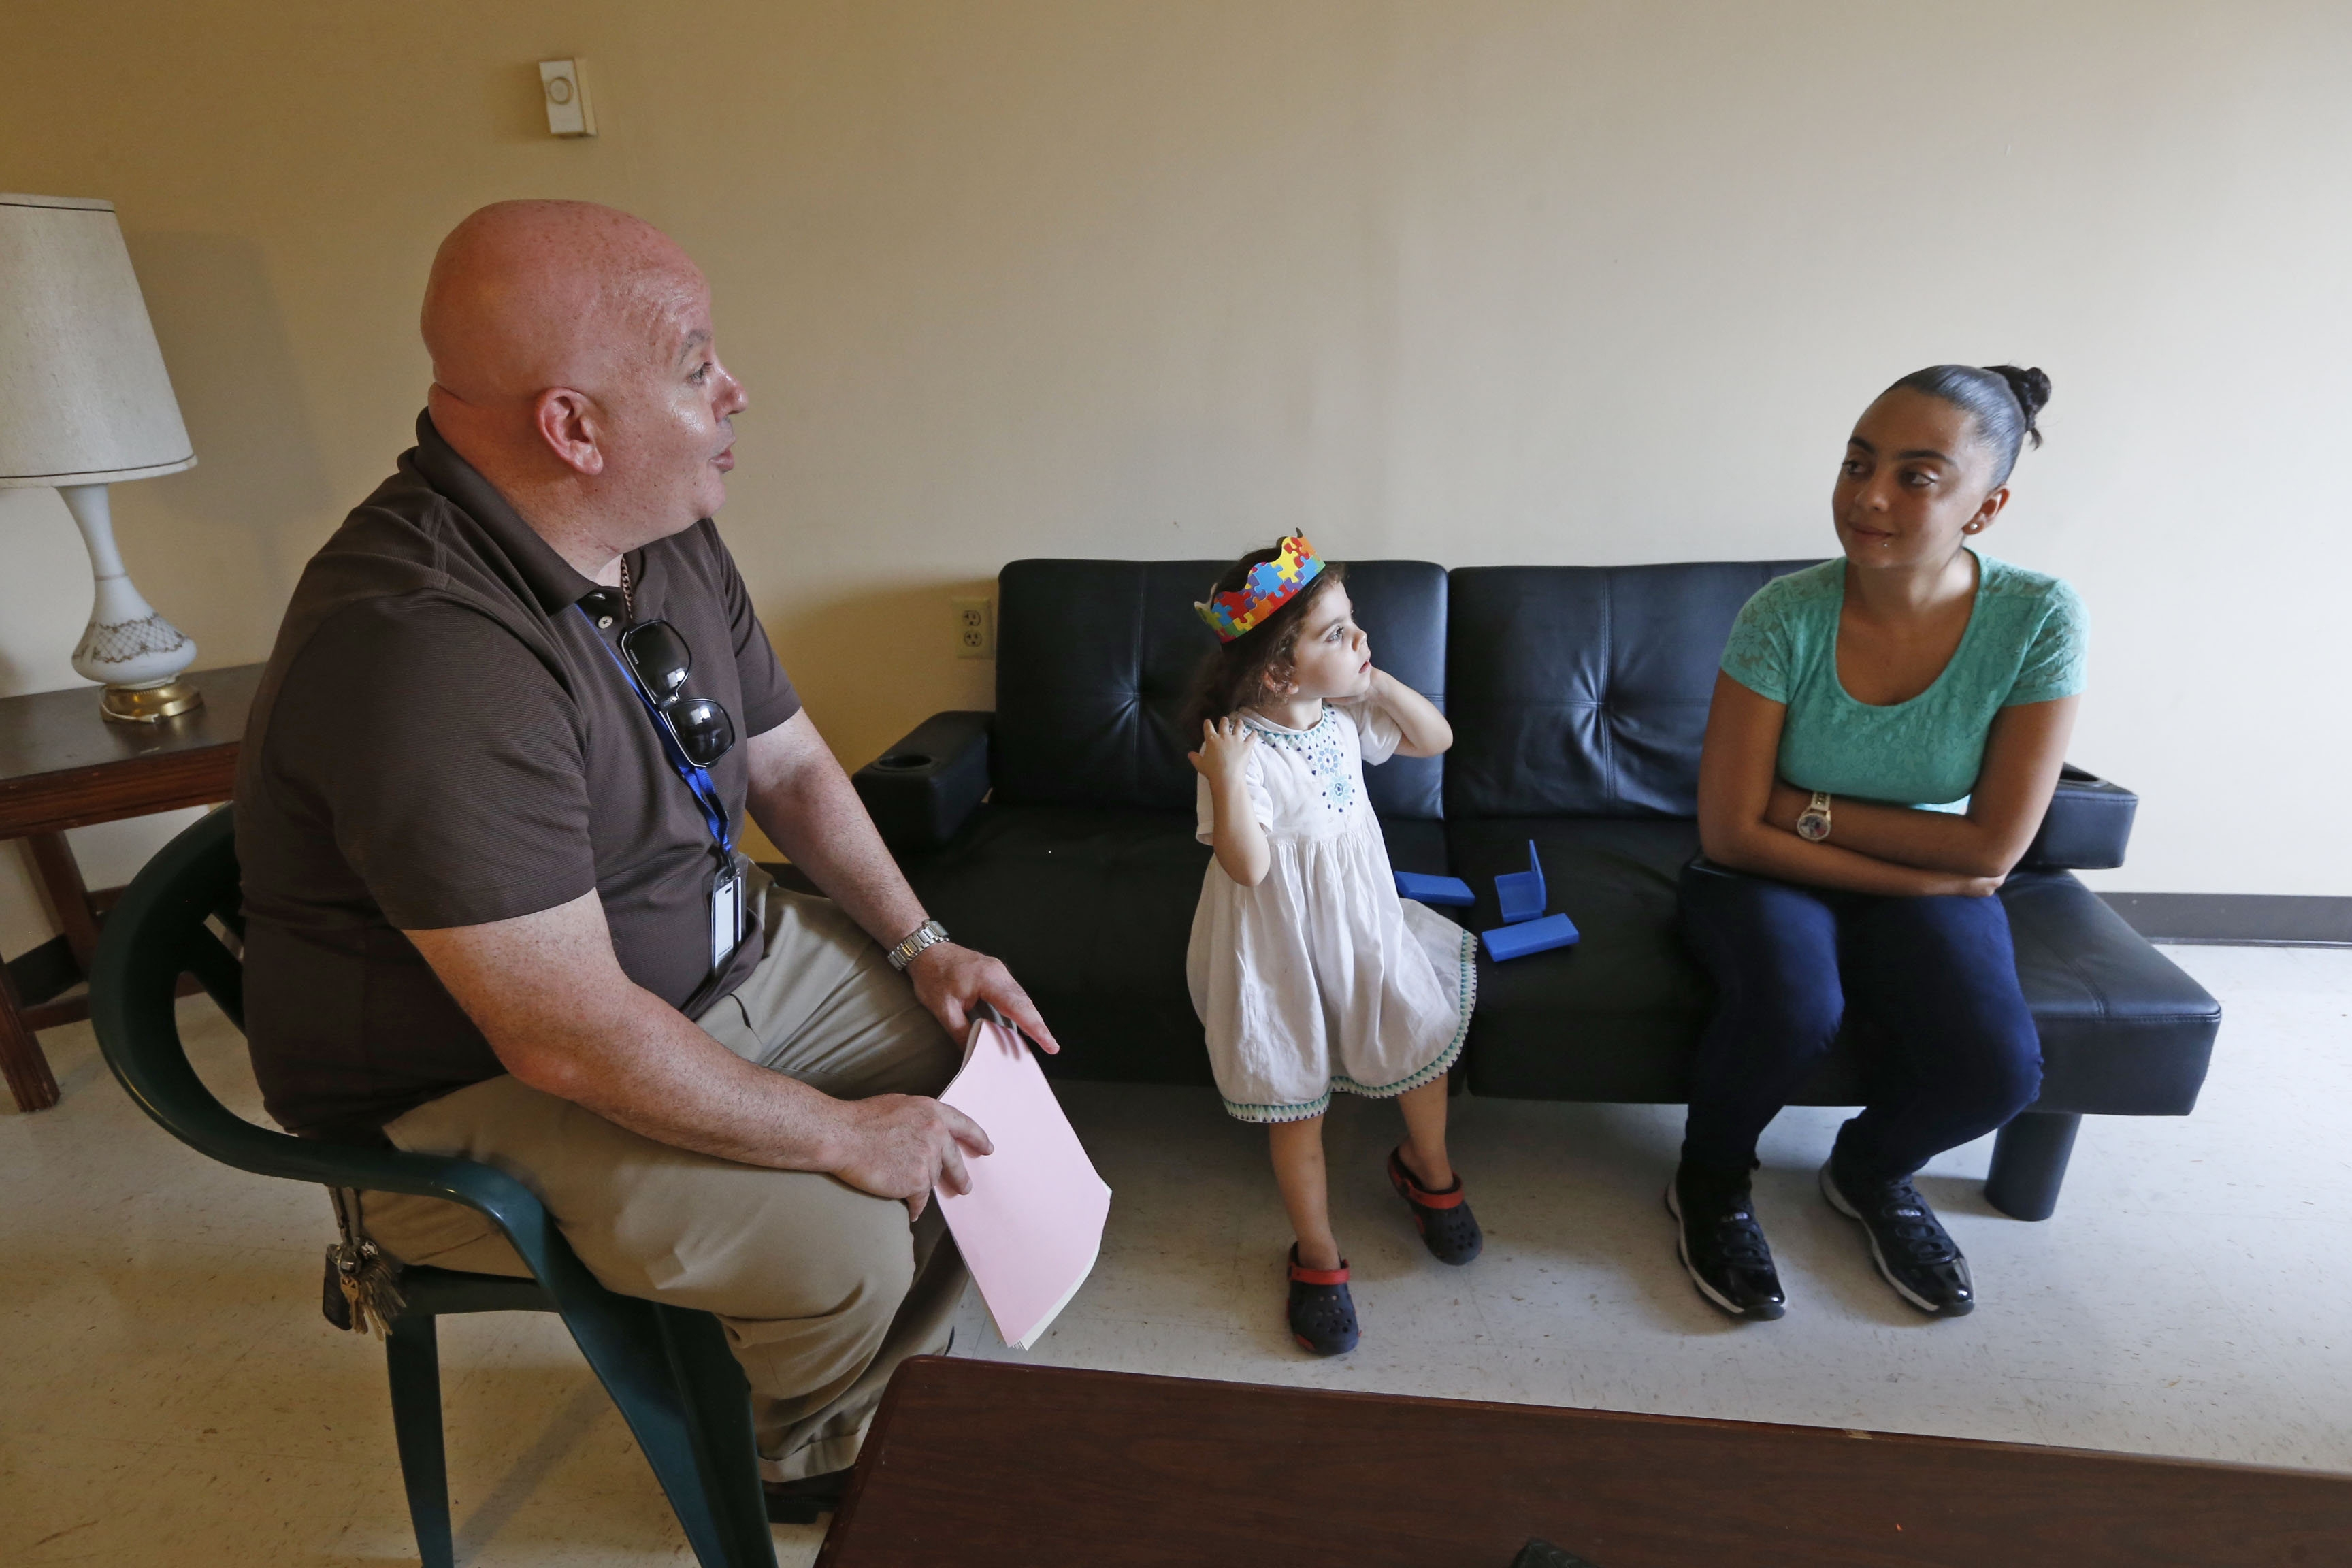 John Starkey, left, the new principal at Lafayette International High School, with his daughter Mia Luz, 3, visit the apartment of Hector Virella in the Santa Maria Towers apartments, and his daughter Angelica Viyella Torres, 19, right, and tries to persuade her to come to his school.  This was on Tuesday, Aug. 30, 2016.  The population of his school is about 50 percent Hispanic students and 50 percent refugees, and a majority of Buffalo has focused a lot on the refugee population. John Starkey, the new principal of Lafayette International HS, is trying to ensure his Hispanic students (almost all Puerto Rican) feel welcome and wanted at the new high school, as well, by going on visits to these students' homes and felowshiping with them in their community.  (Robert Kirkham/Buffalo News)